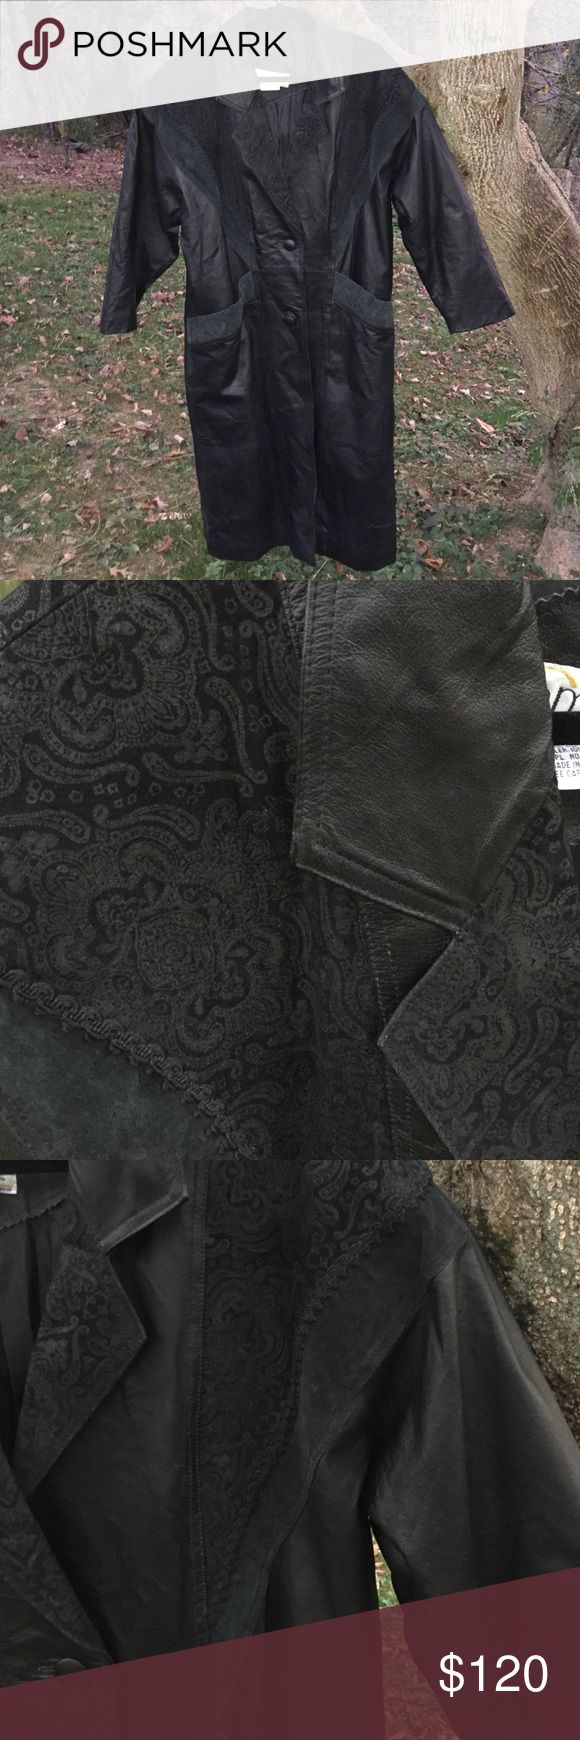 Long Leather Coat Genuine leather coat by Omint. Detail pattern on shoulders, lapel, upper back and top of pockets. Button front and two deep pockets. Worn only a couple times. In Great Condition! Omint Jackets & Coats Trench Coats